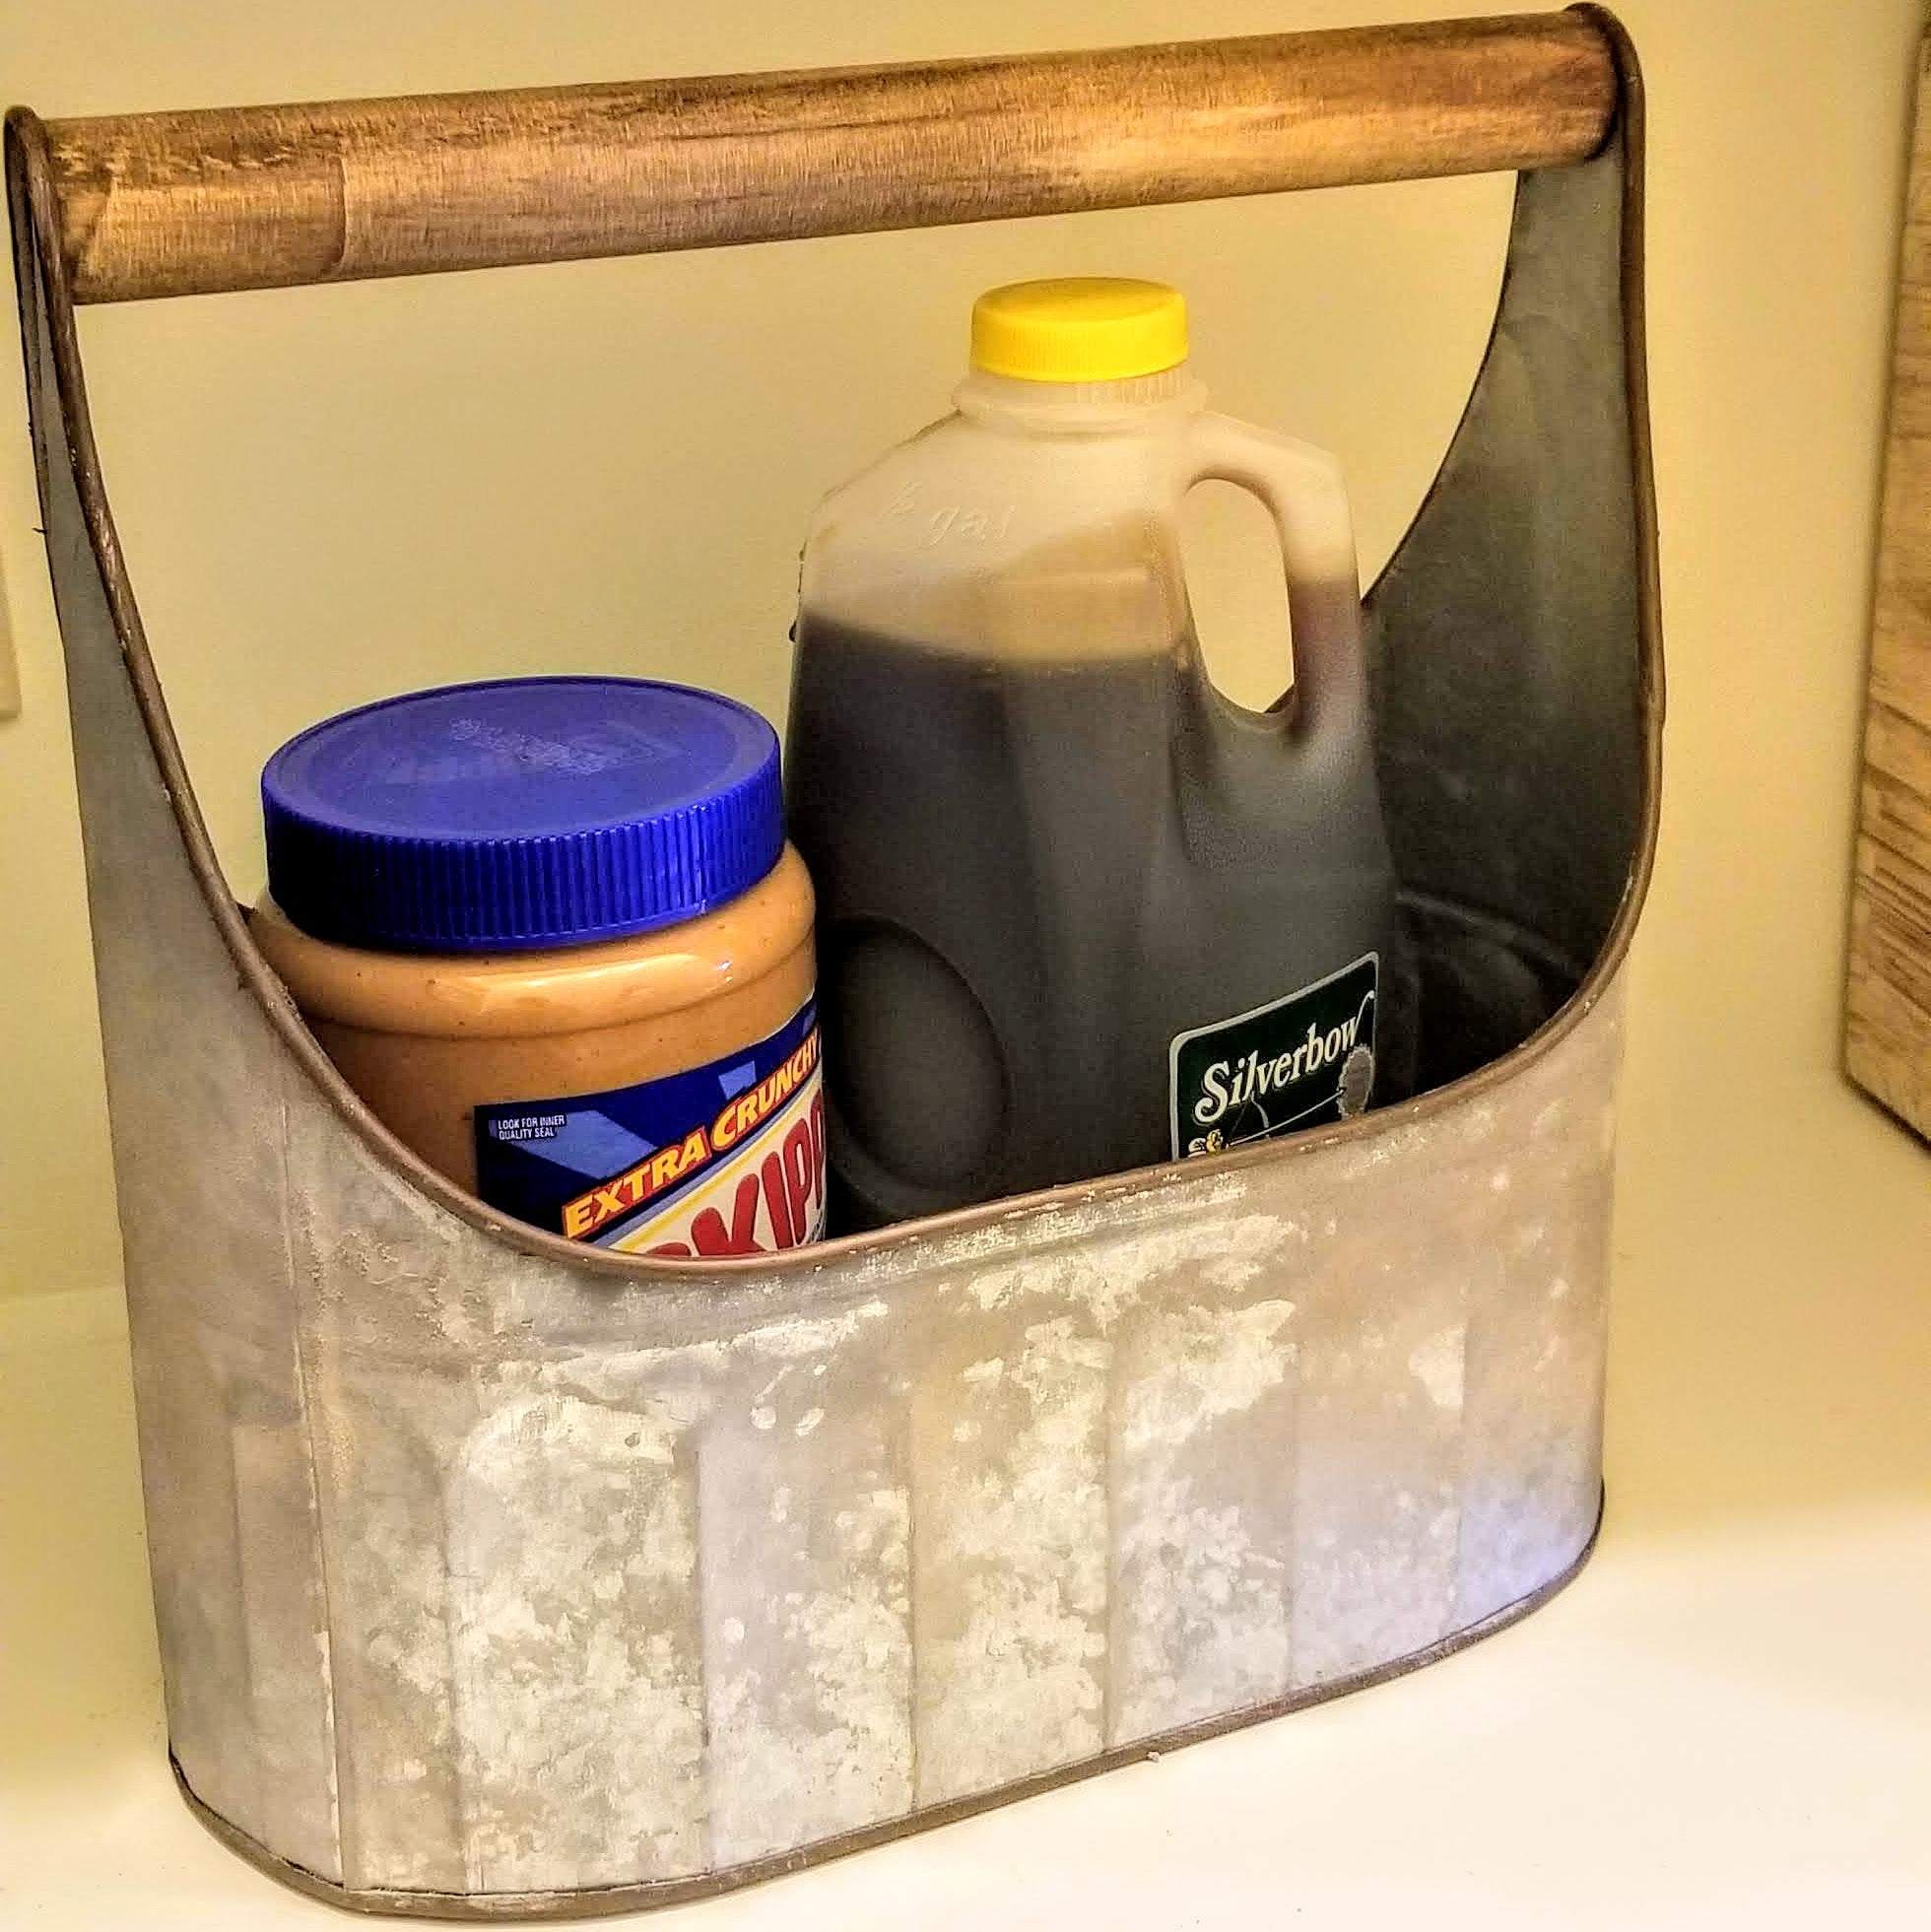 Oval Caddies With Wood Handles In Two Sizes Large/Small